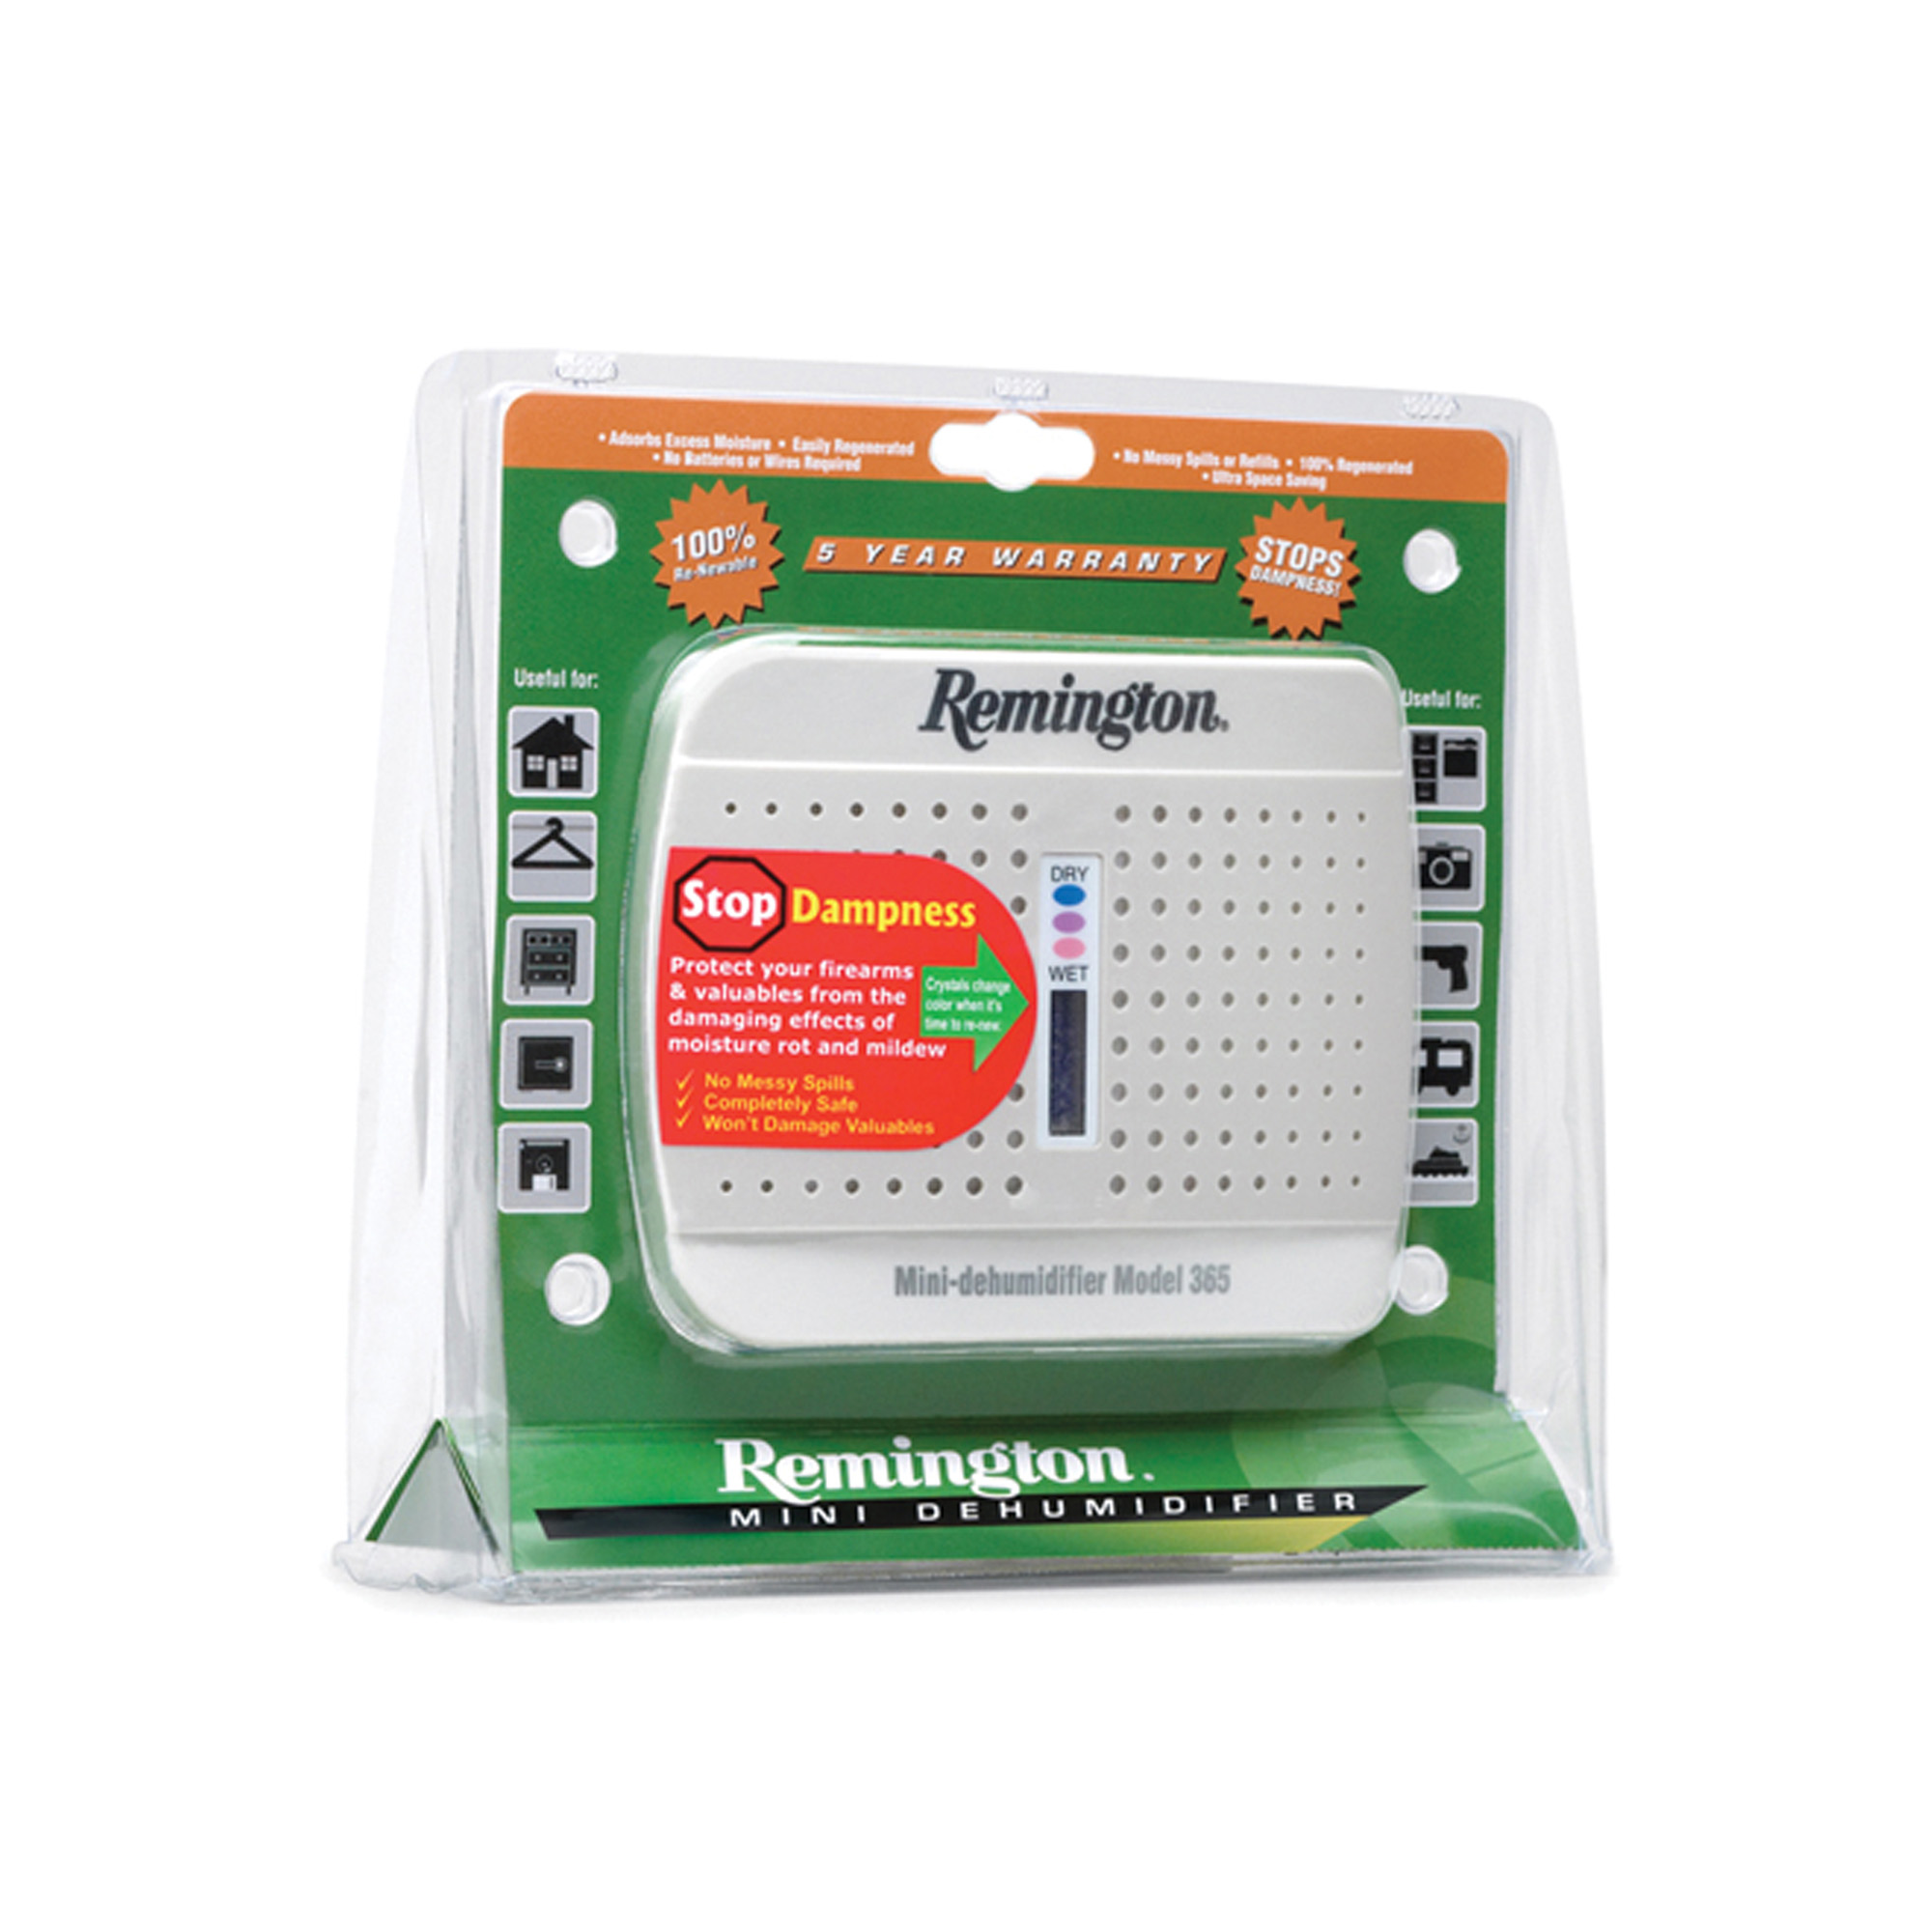 This compact unit can go anywhere without wires or extension cords. Use it to prevent damage from moisture and mildew. Protects firearms from excessive moisture within a 333 cubic feet enclosure. Keep your firearms and valuables safe and dry with the Remington Mini Dehumidifier.